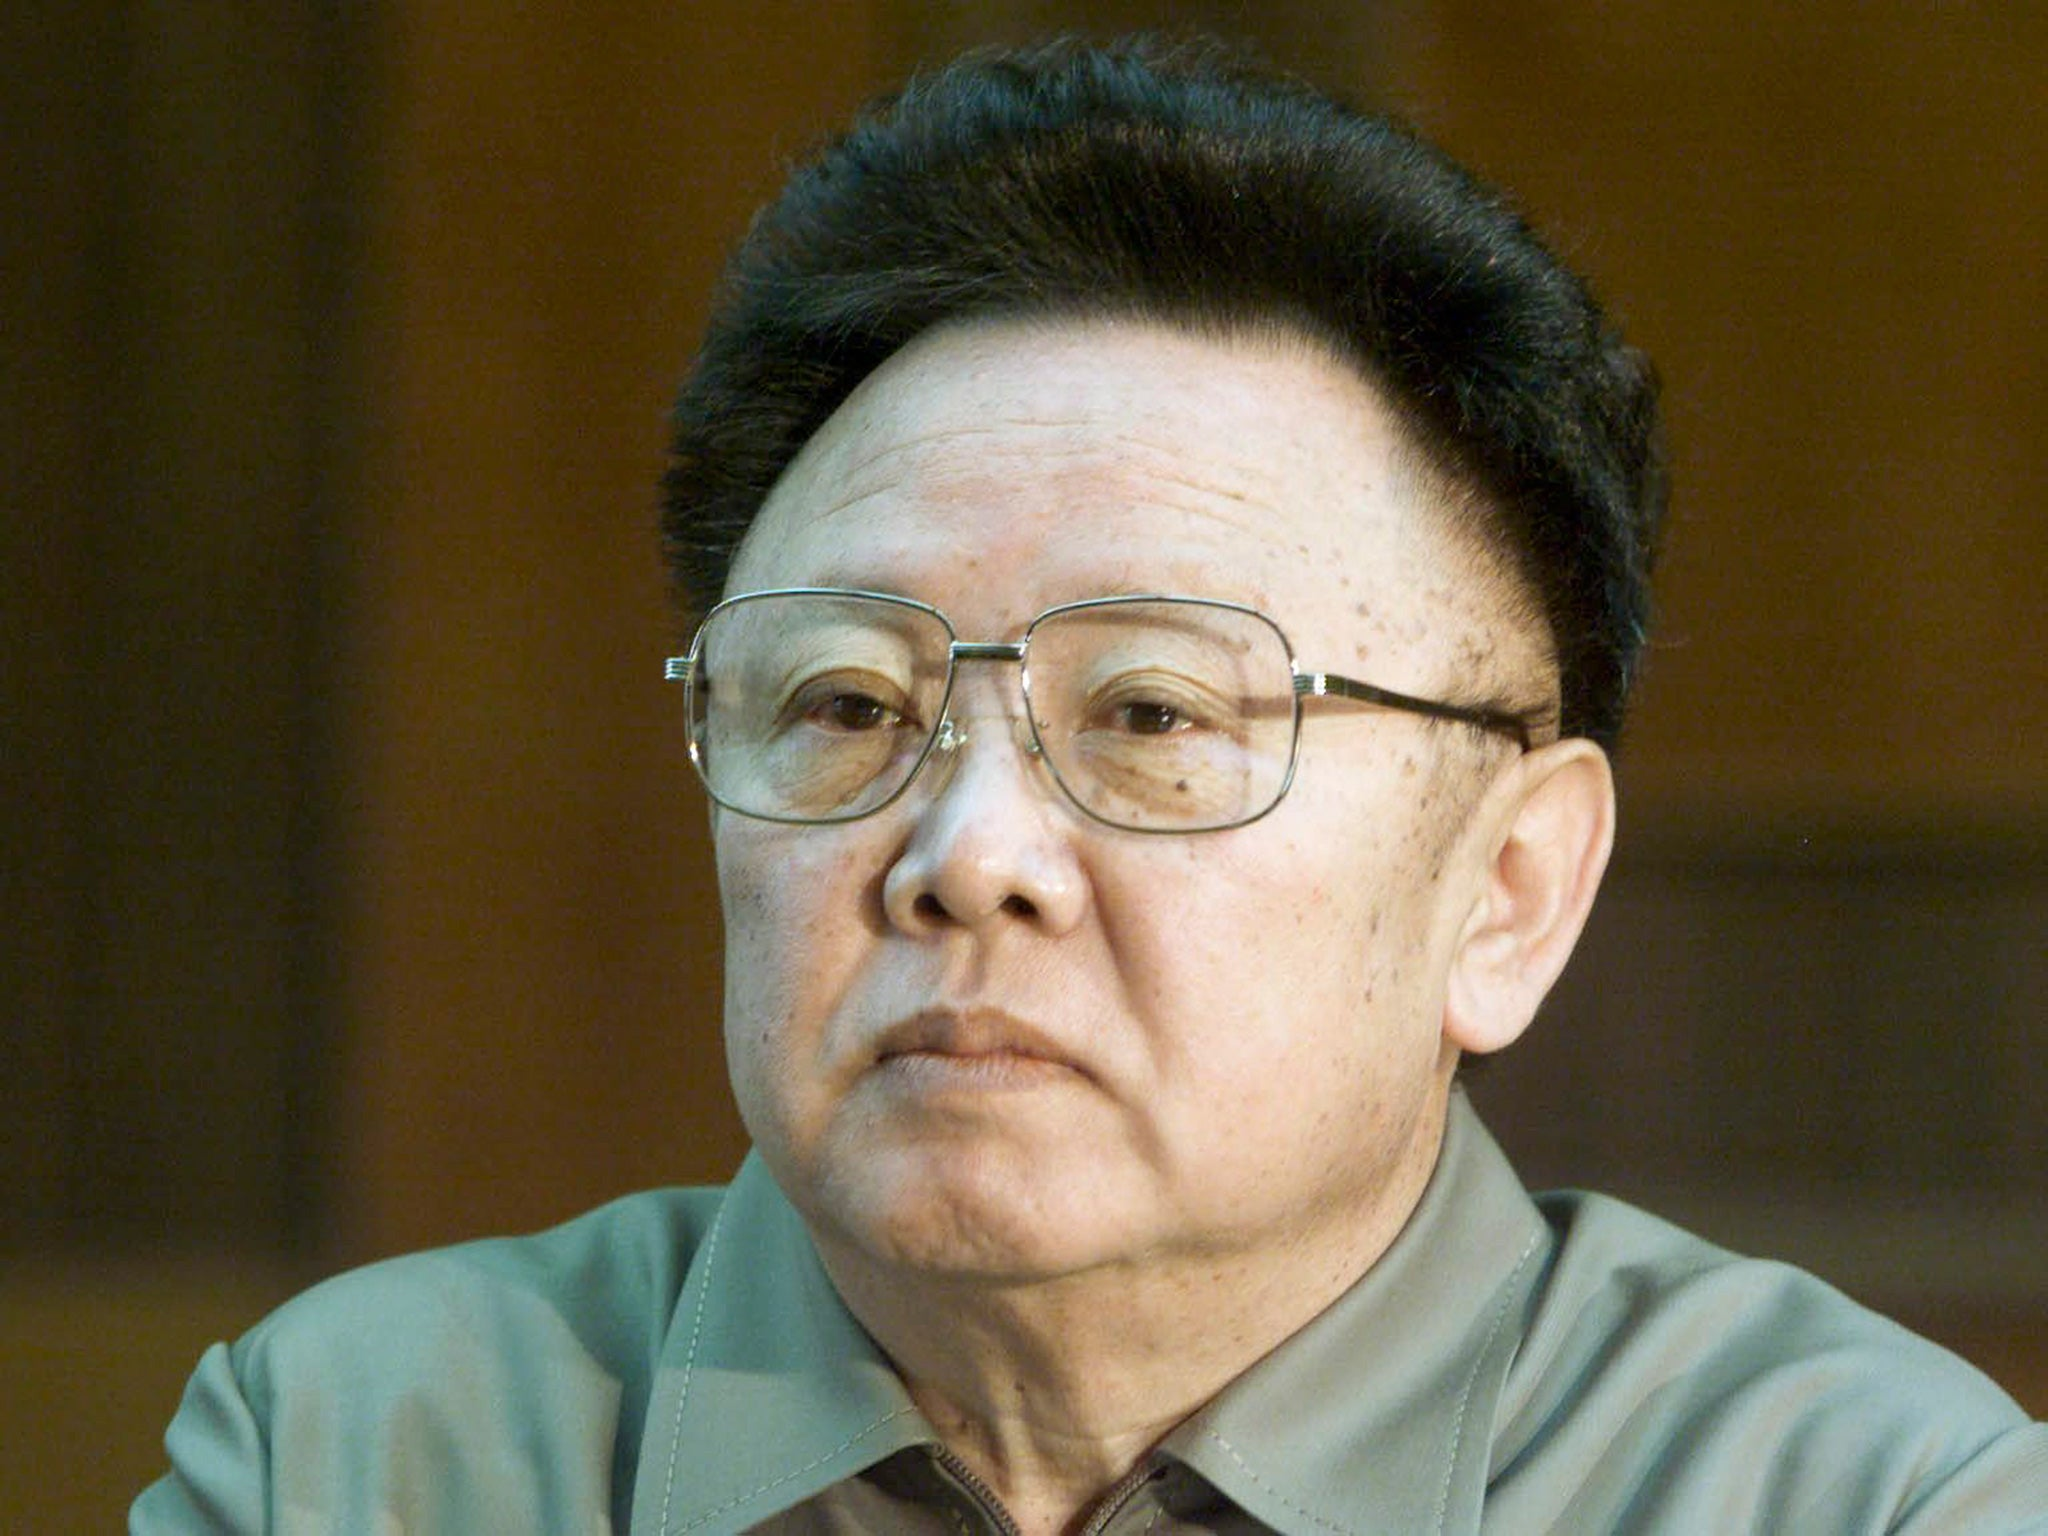 kim jong il [imtext1]while kim il sung was still alive, kim jong il built underground facilities and connected them like a spider web saying it is for the purpose of securing protection for the suryeong.